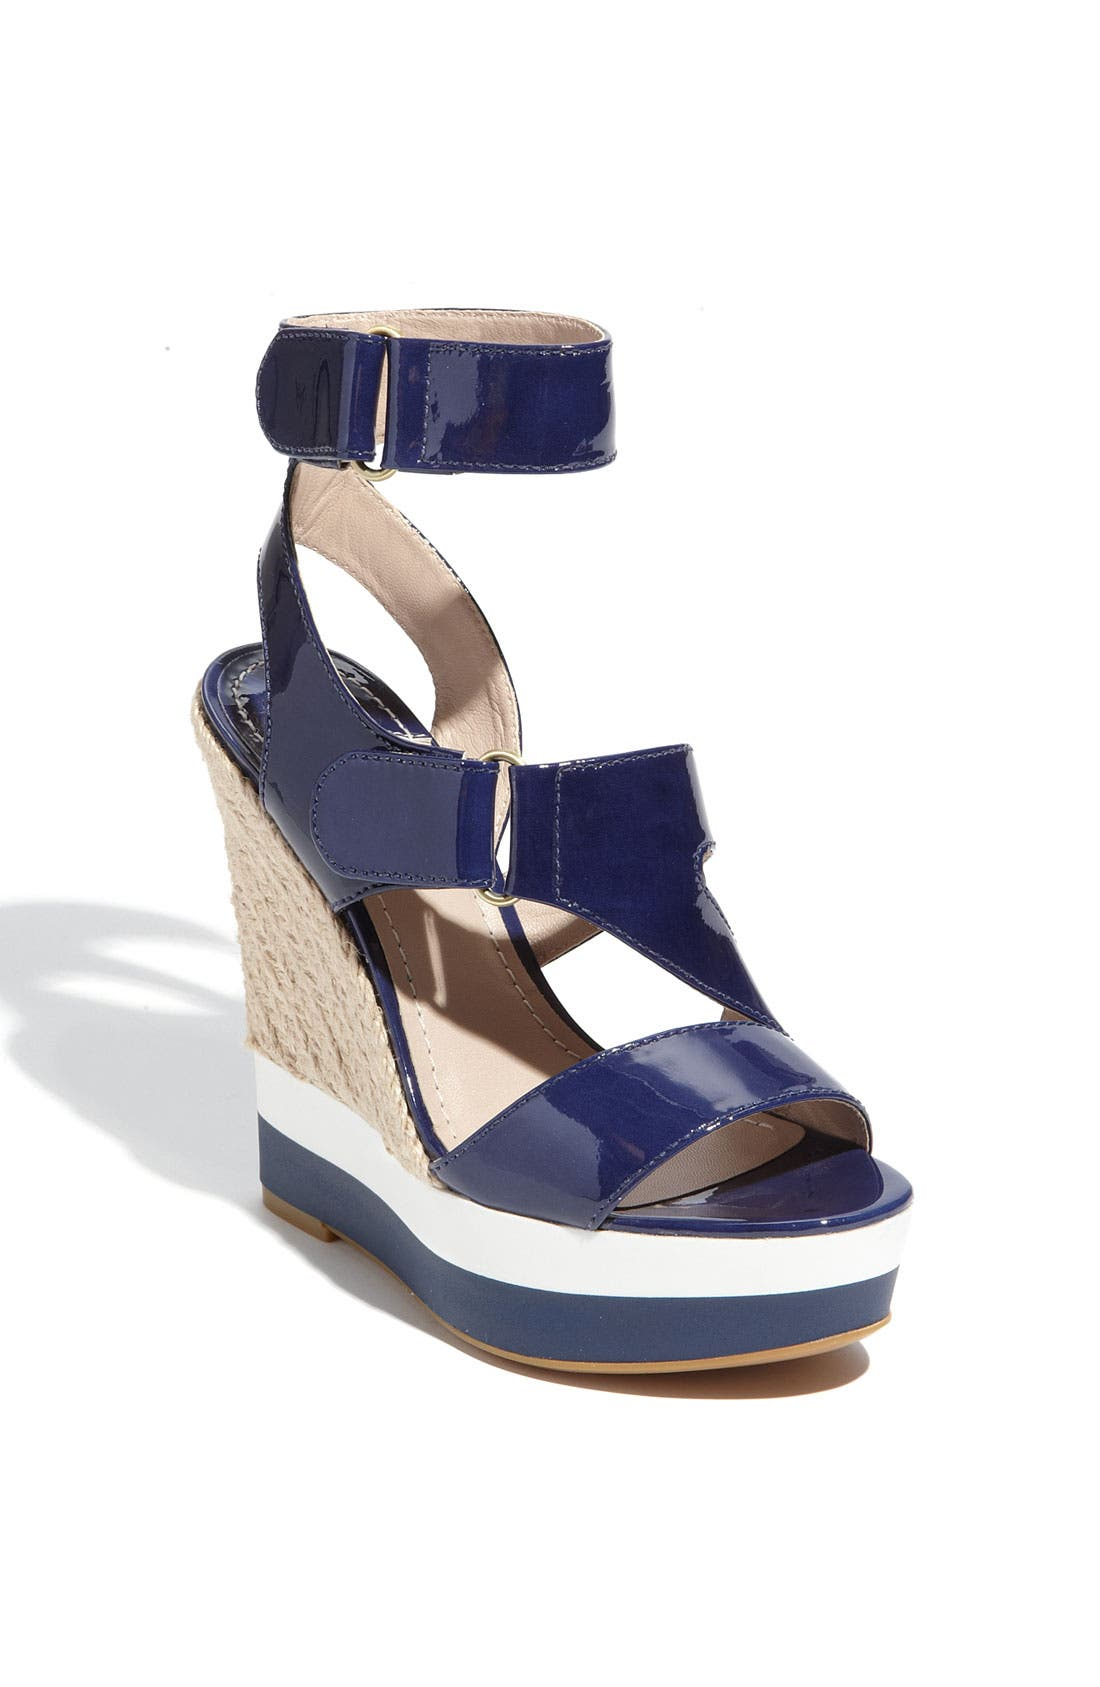 Main Image - Joan & David 'Sundia' Sandal